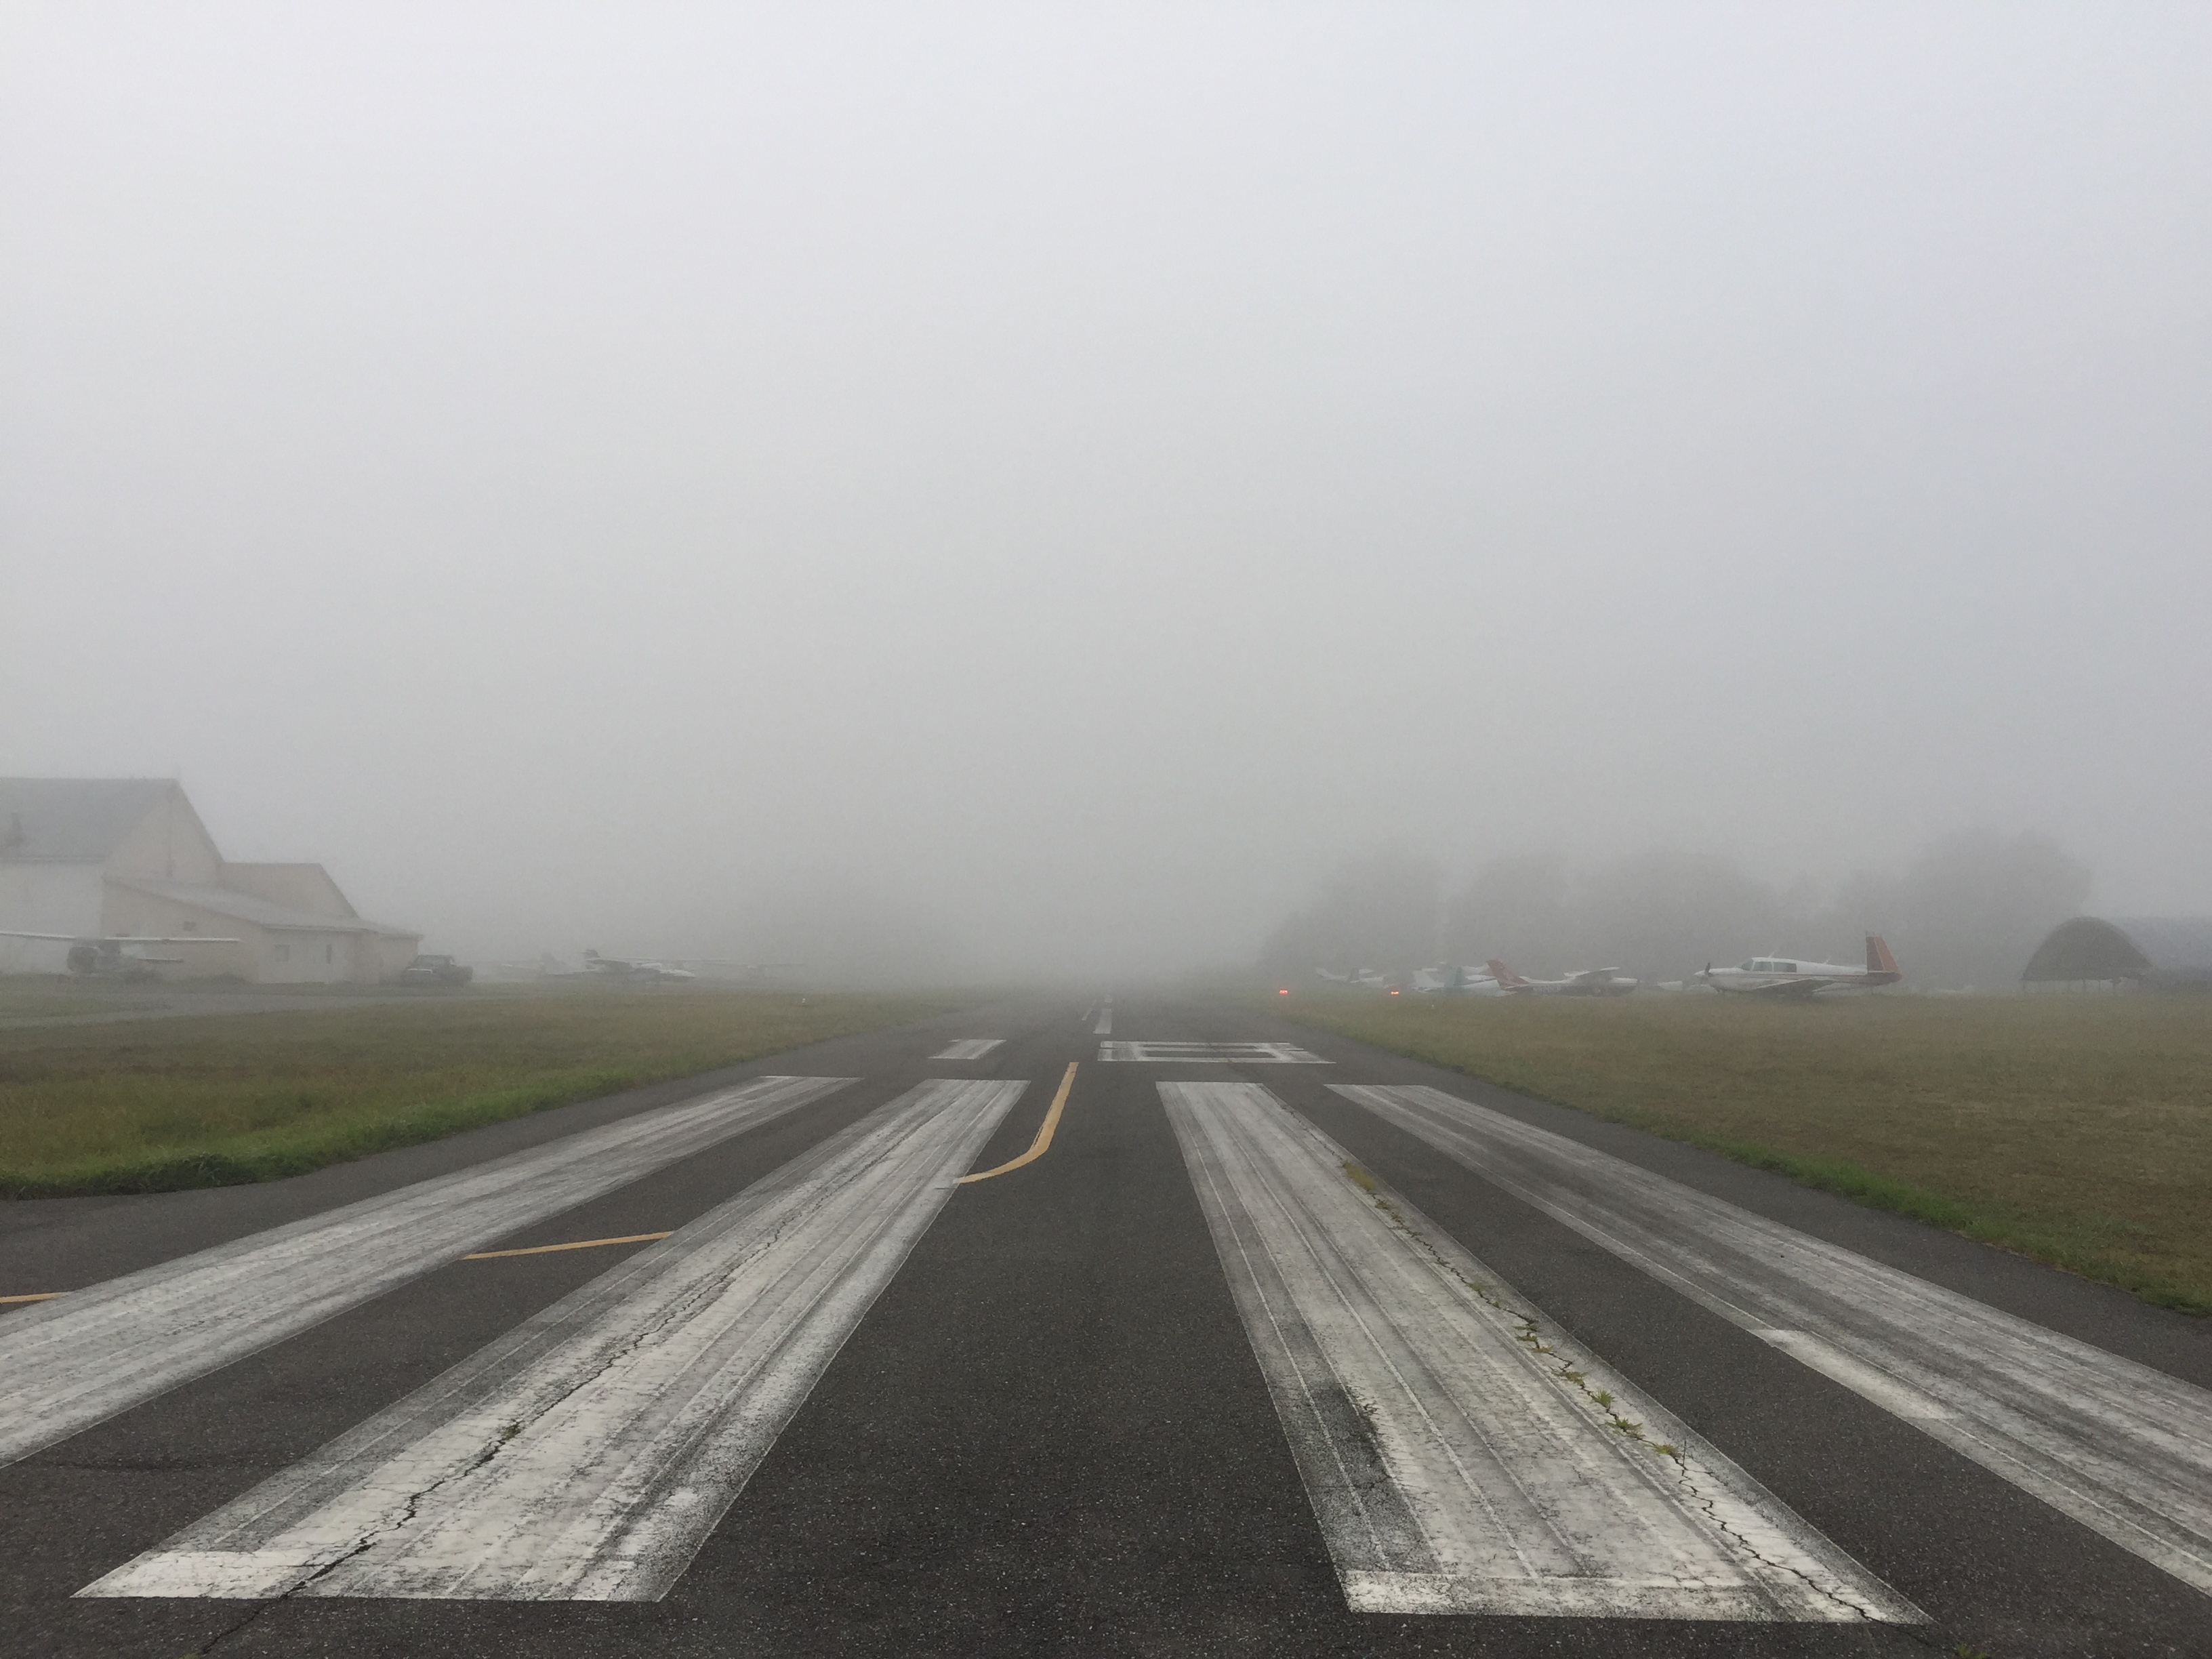 Runway 18 at Freeway